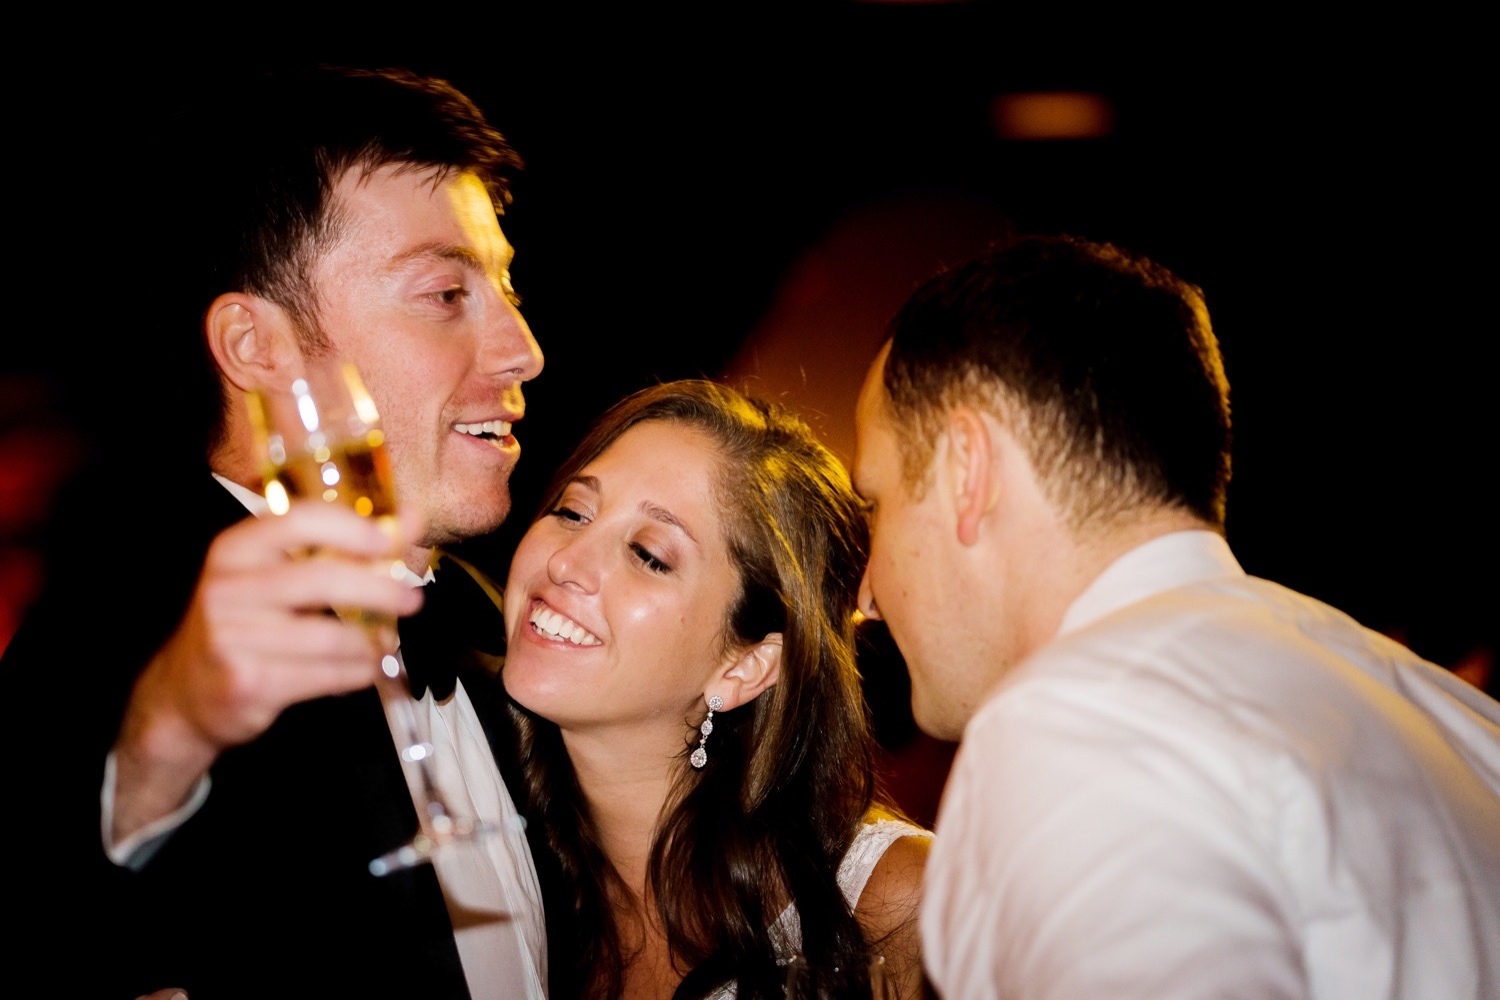 A newly wedded couple hugging a best man during a wedding reception at Liberty Warehouse, Brooklyn New York.